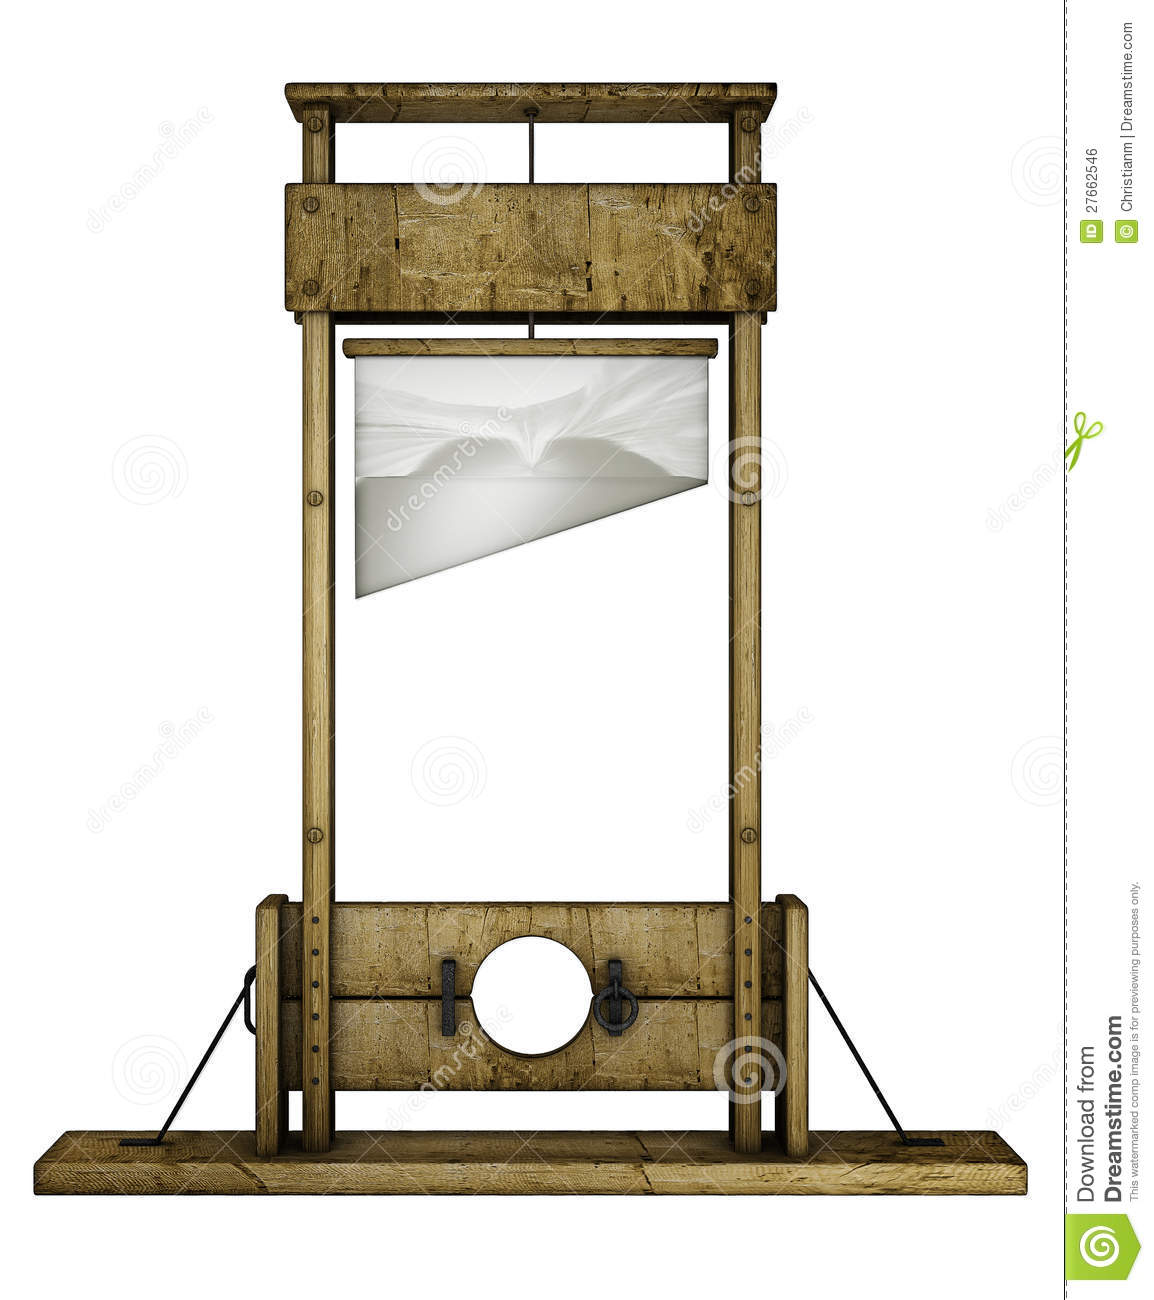 guillotine front view royalty free stock image image. Black Bedroom Furniture Sets. Home Design Ideas